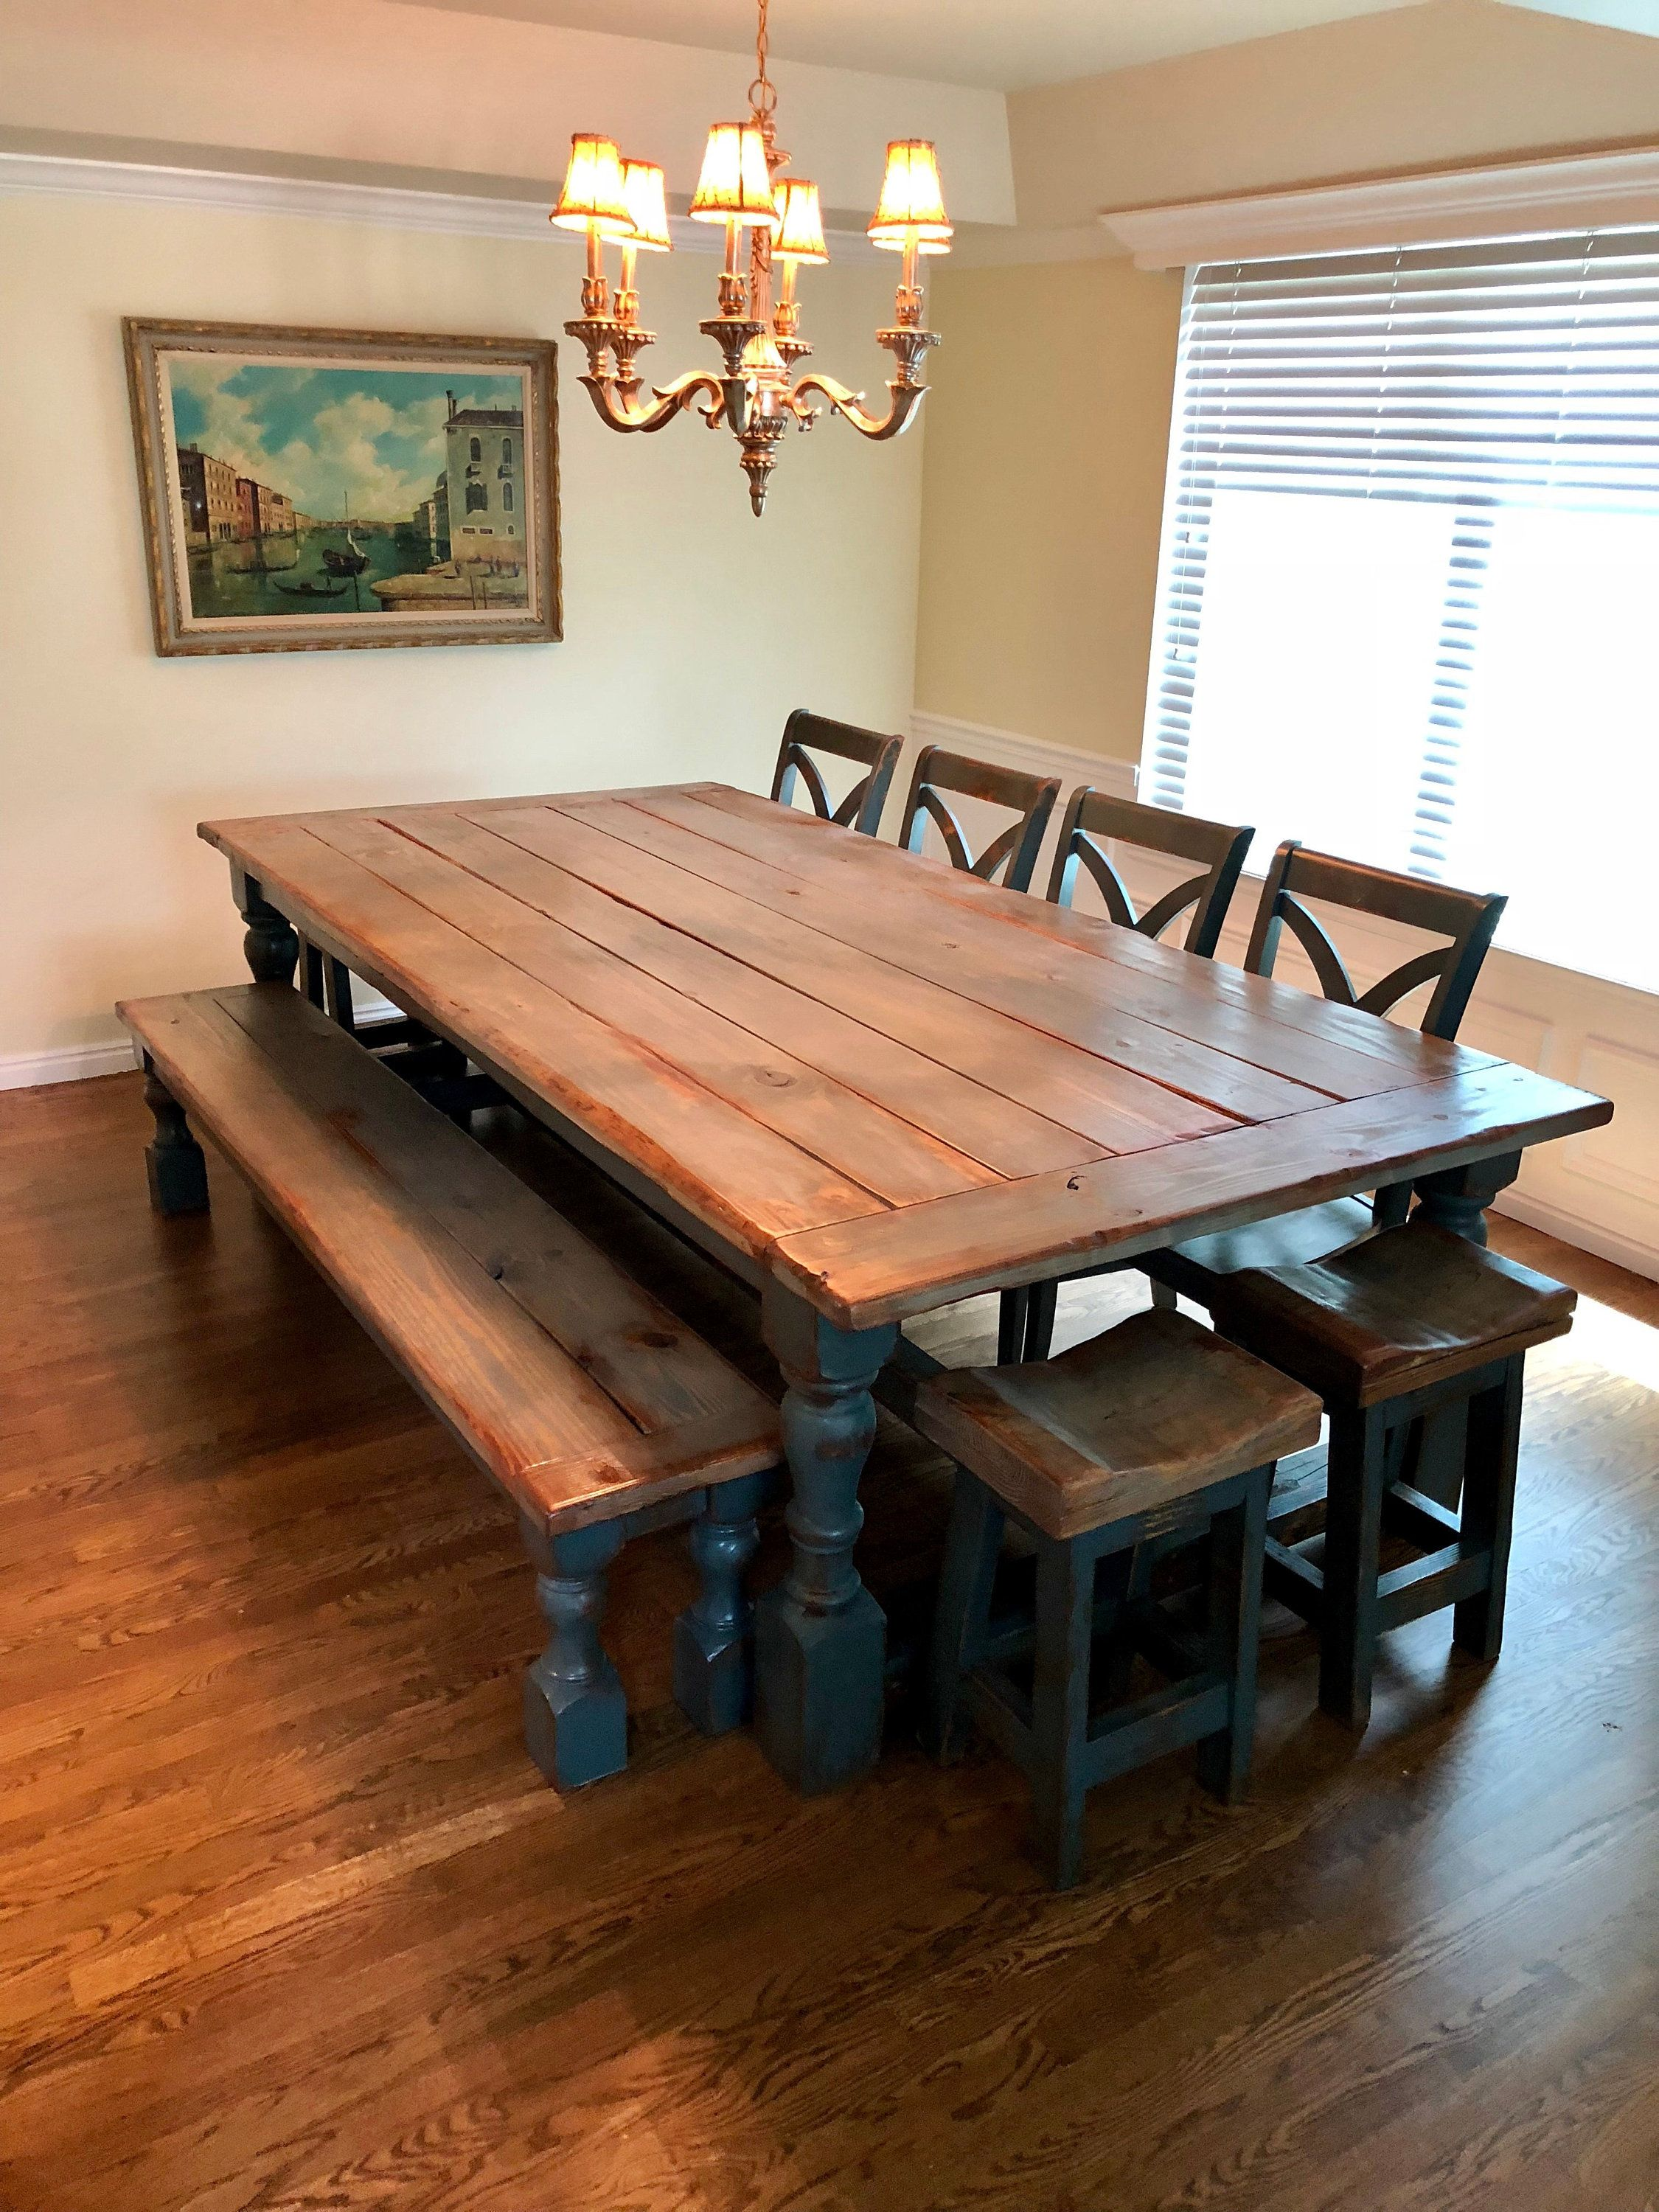 Rustic New England Farmhouse TABLE Bench 4 Stools 4 Chairs